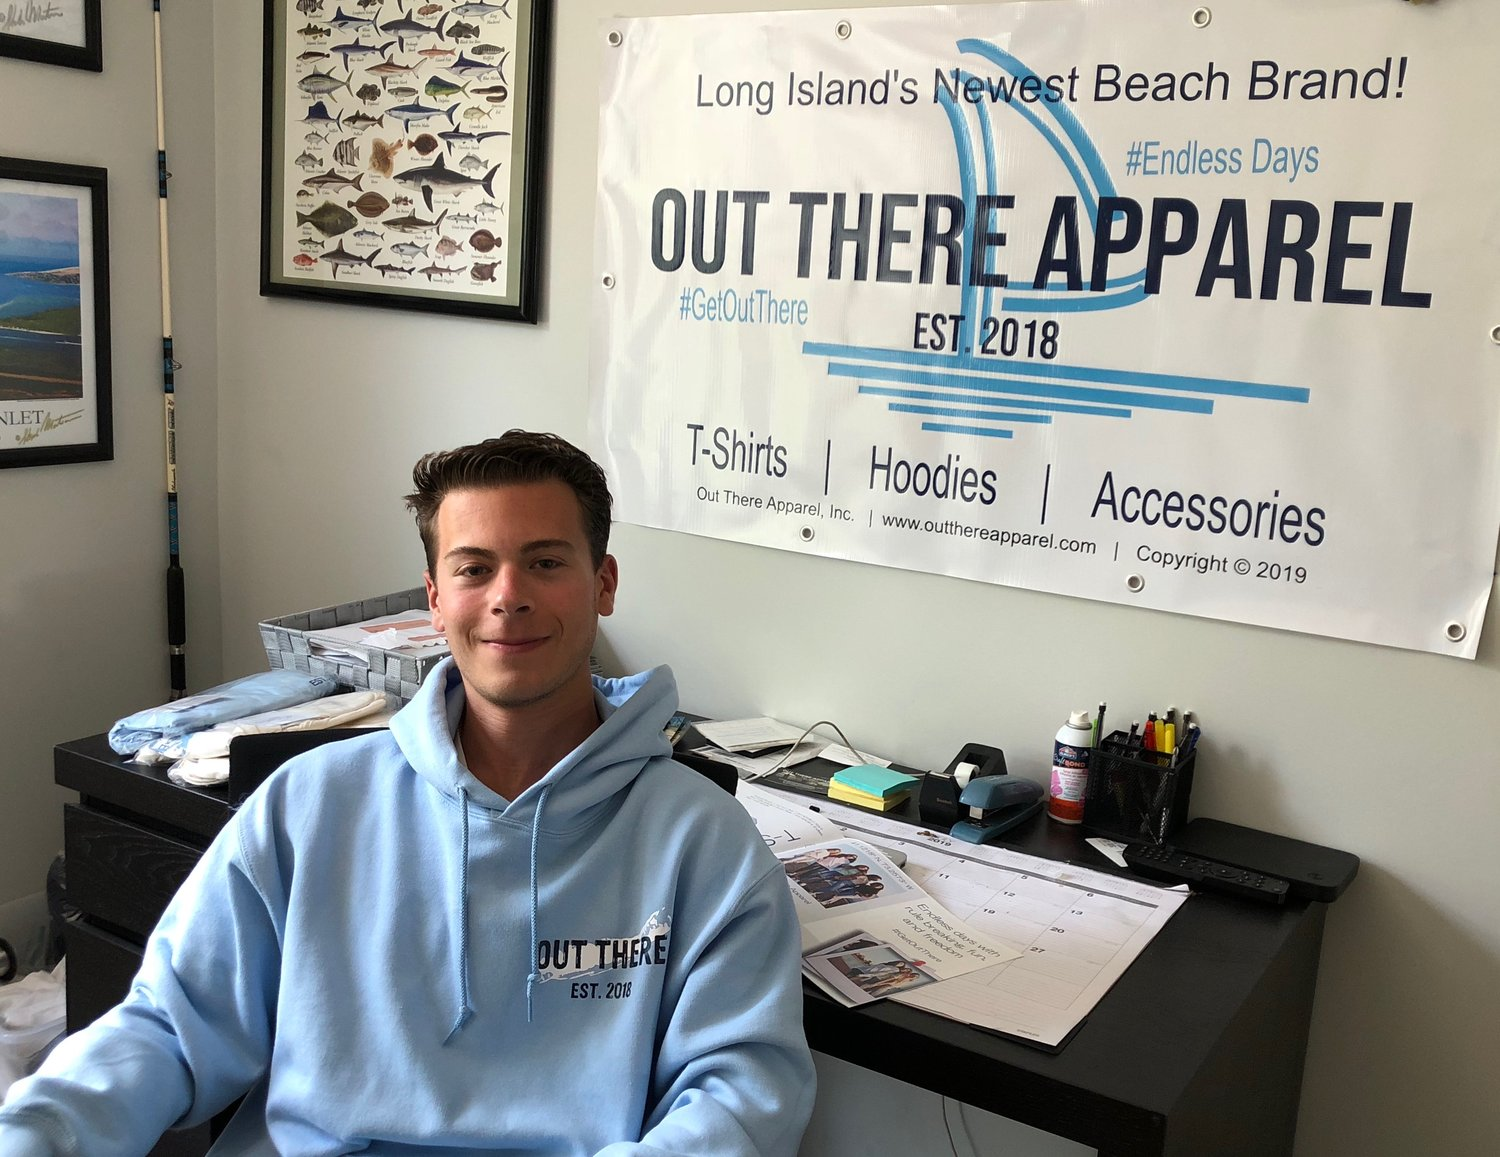 Oceanside resident Anthony Capellupo, 21, co-founded the Out There Apparel clothing line to express his passion for the outdoors.